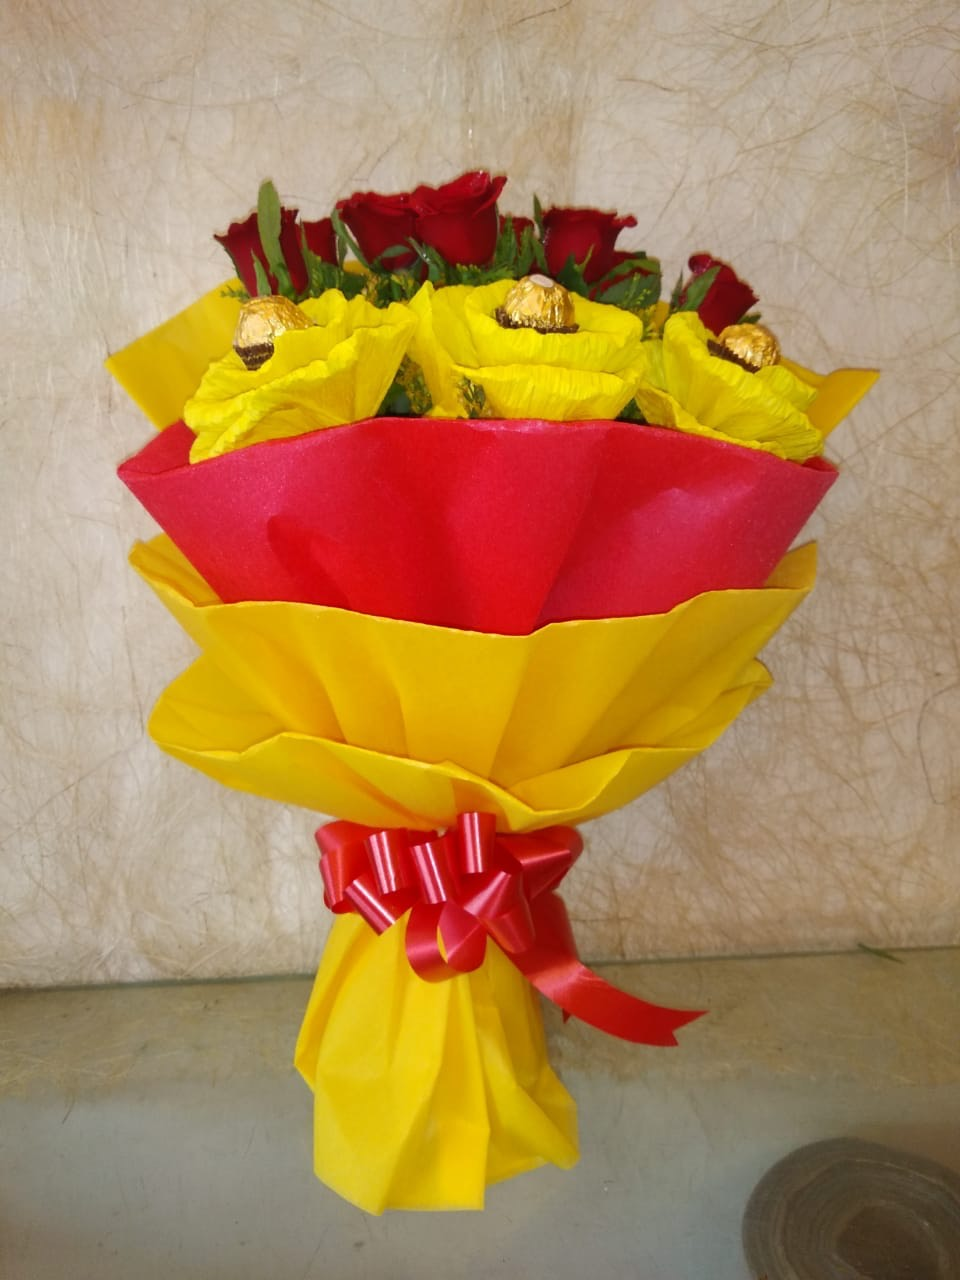 Cake Delivery Connaught Place DelhiRed Roses Ferrero Rocher Bunch